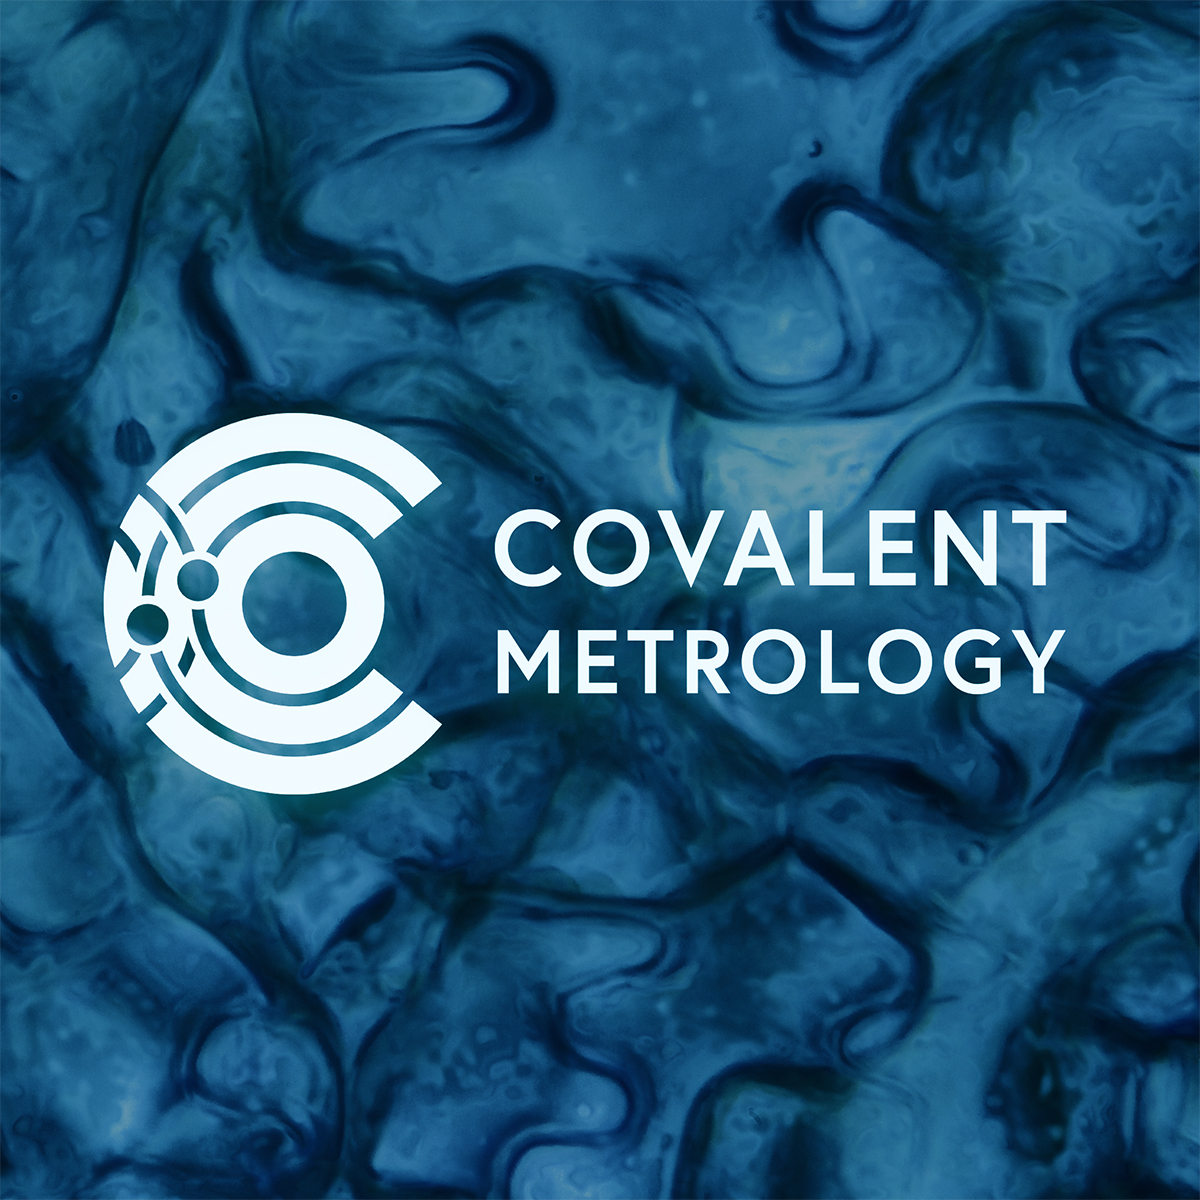 About Covalent Metrology